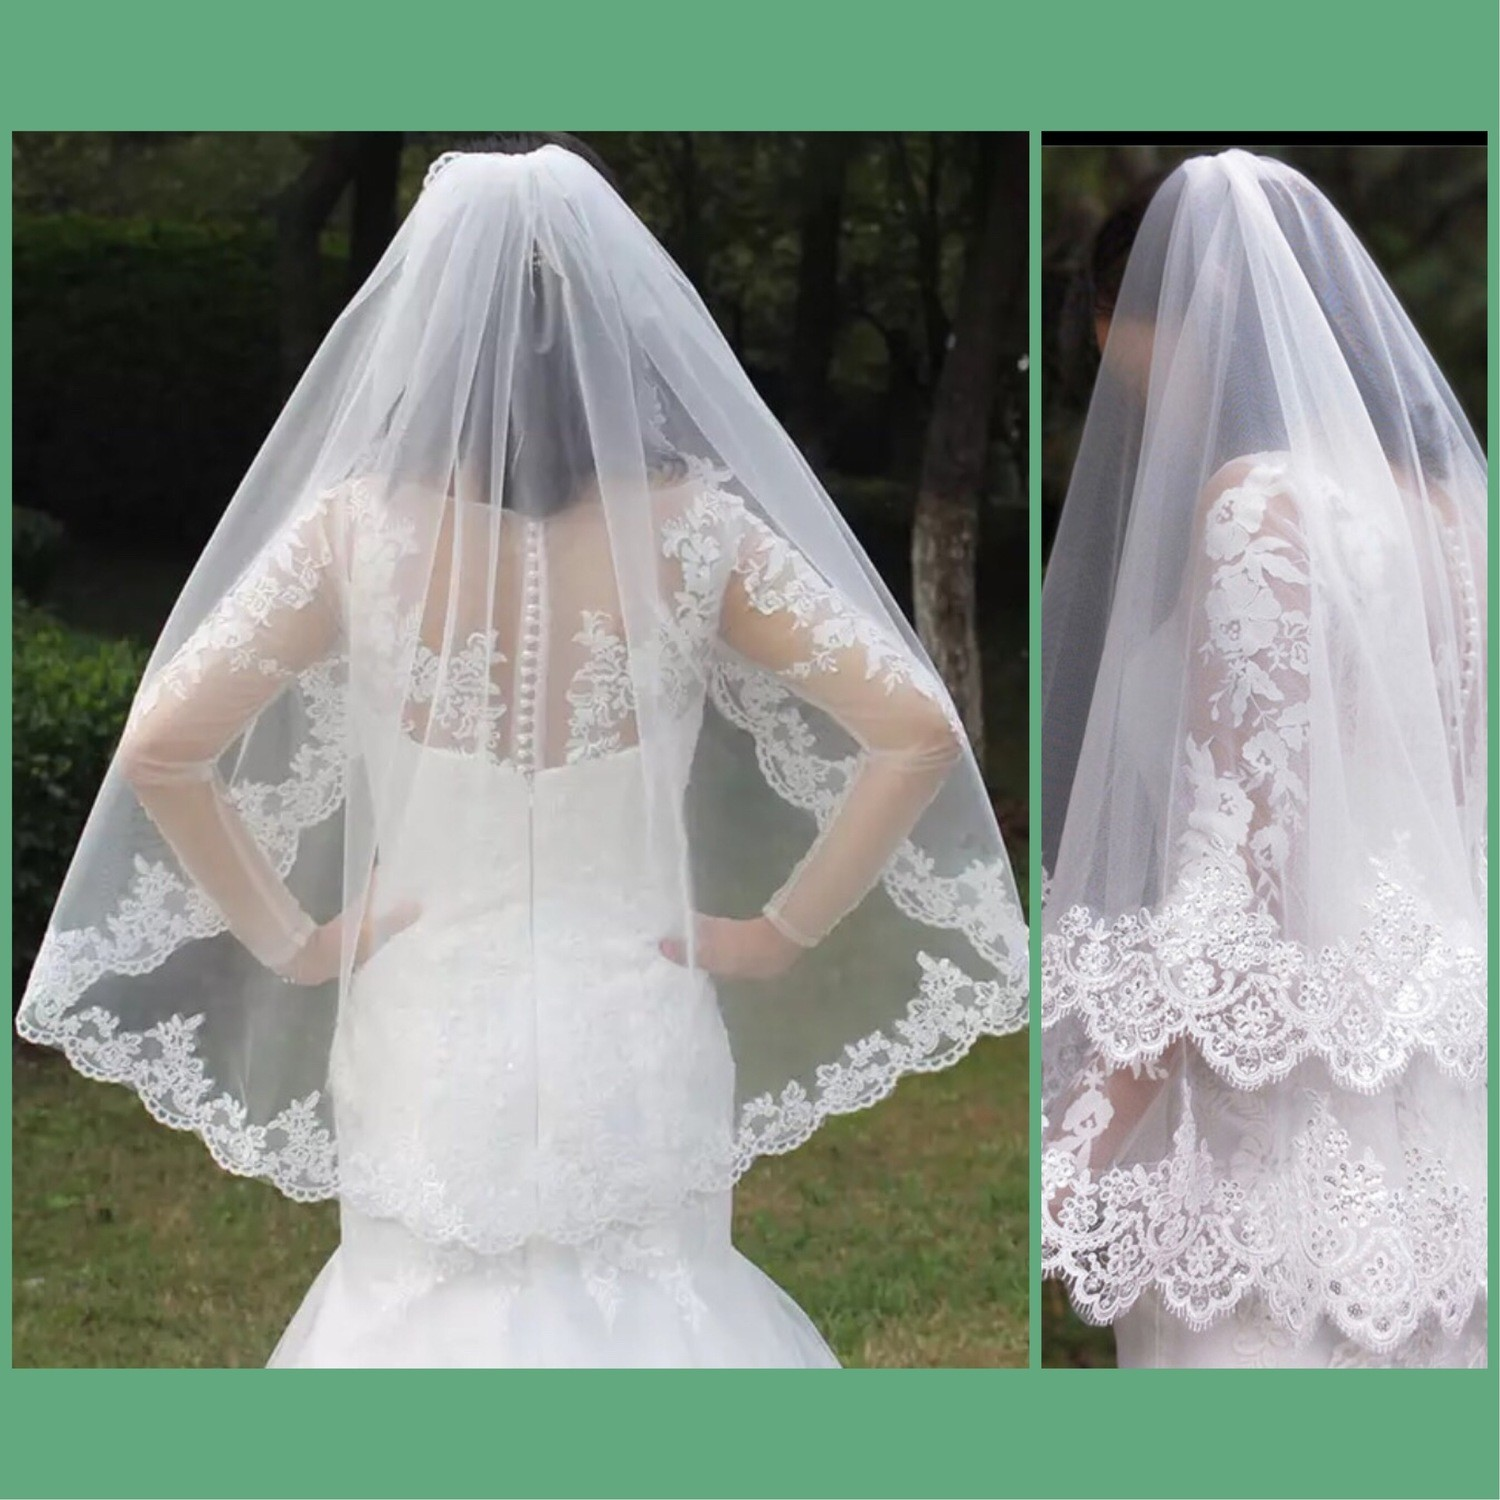 One 1T two Layer 2T Lace Appliques Edge Short Woodland Wedding Veils with Comb New White Ivory Bridal Veils​